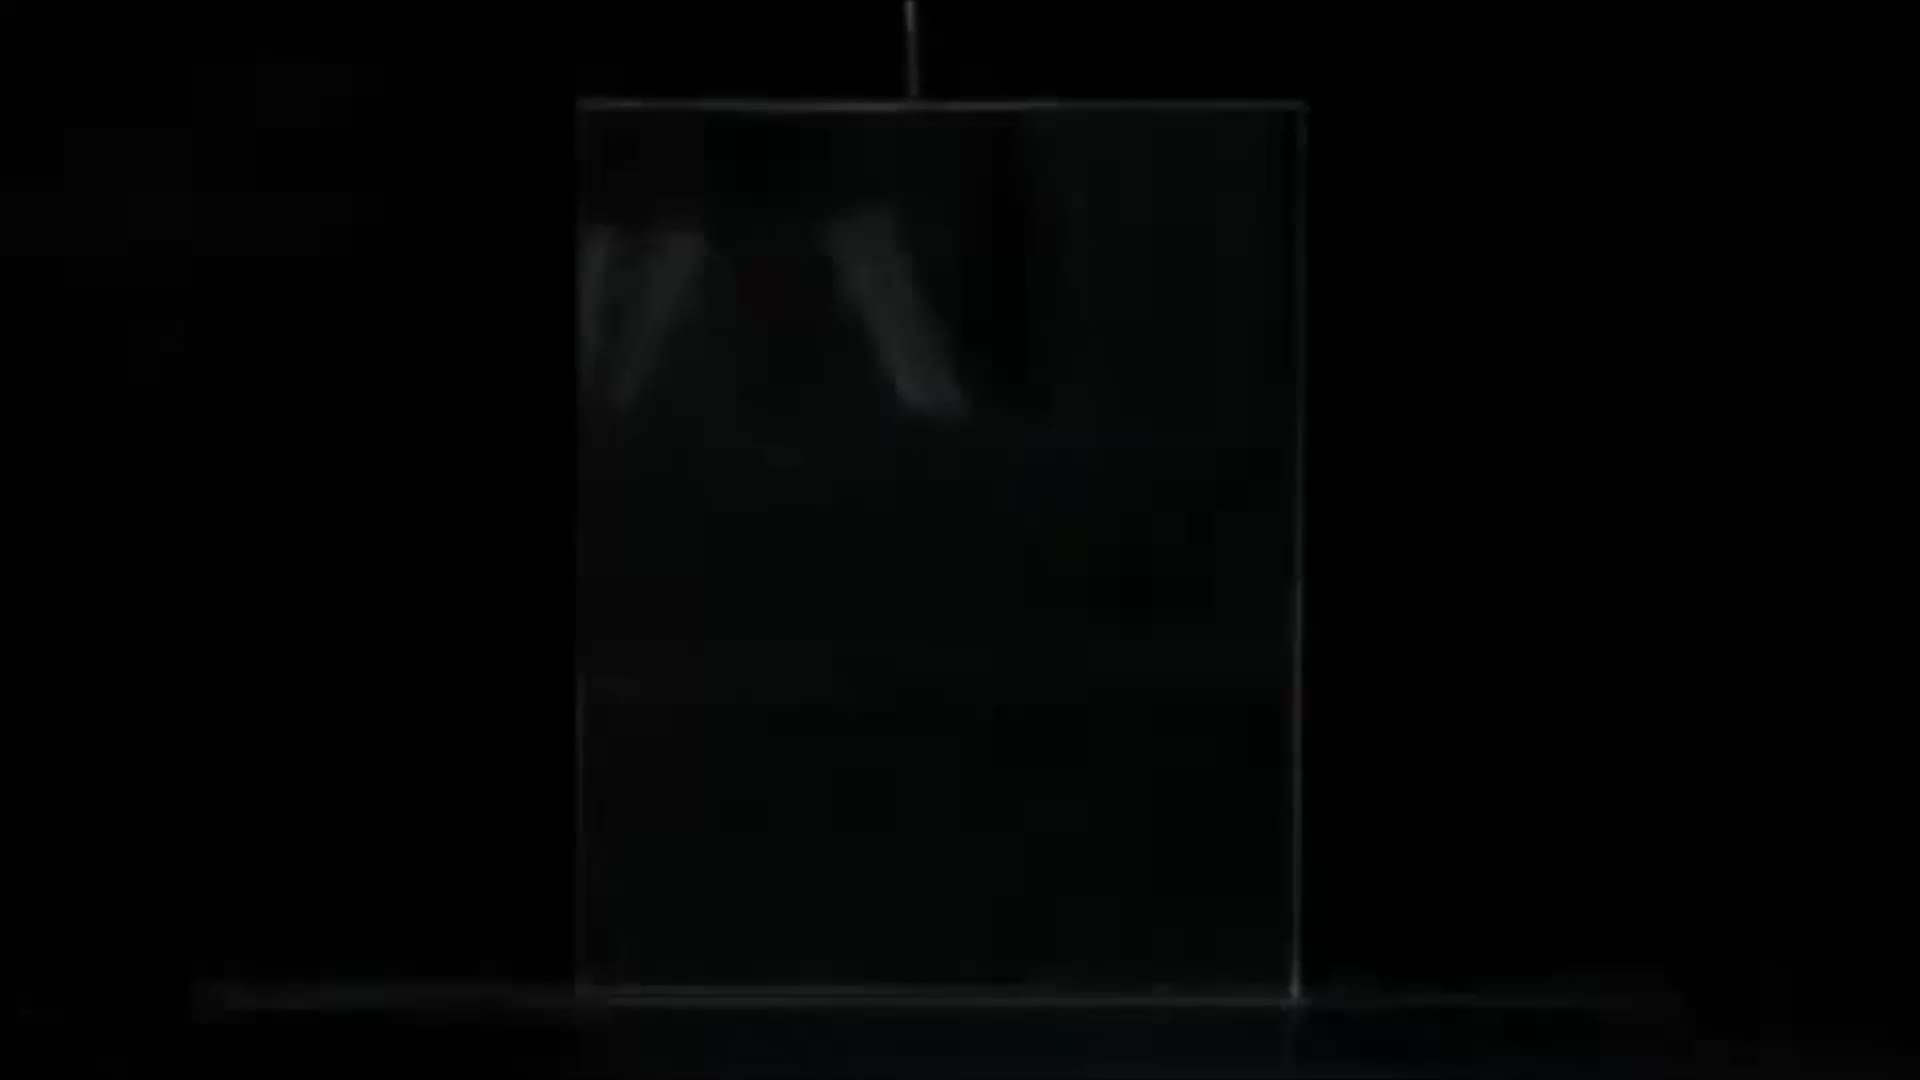 chemicalreactiongifs, Electrical Treeing (reddit) GIFs